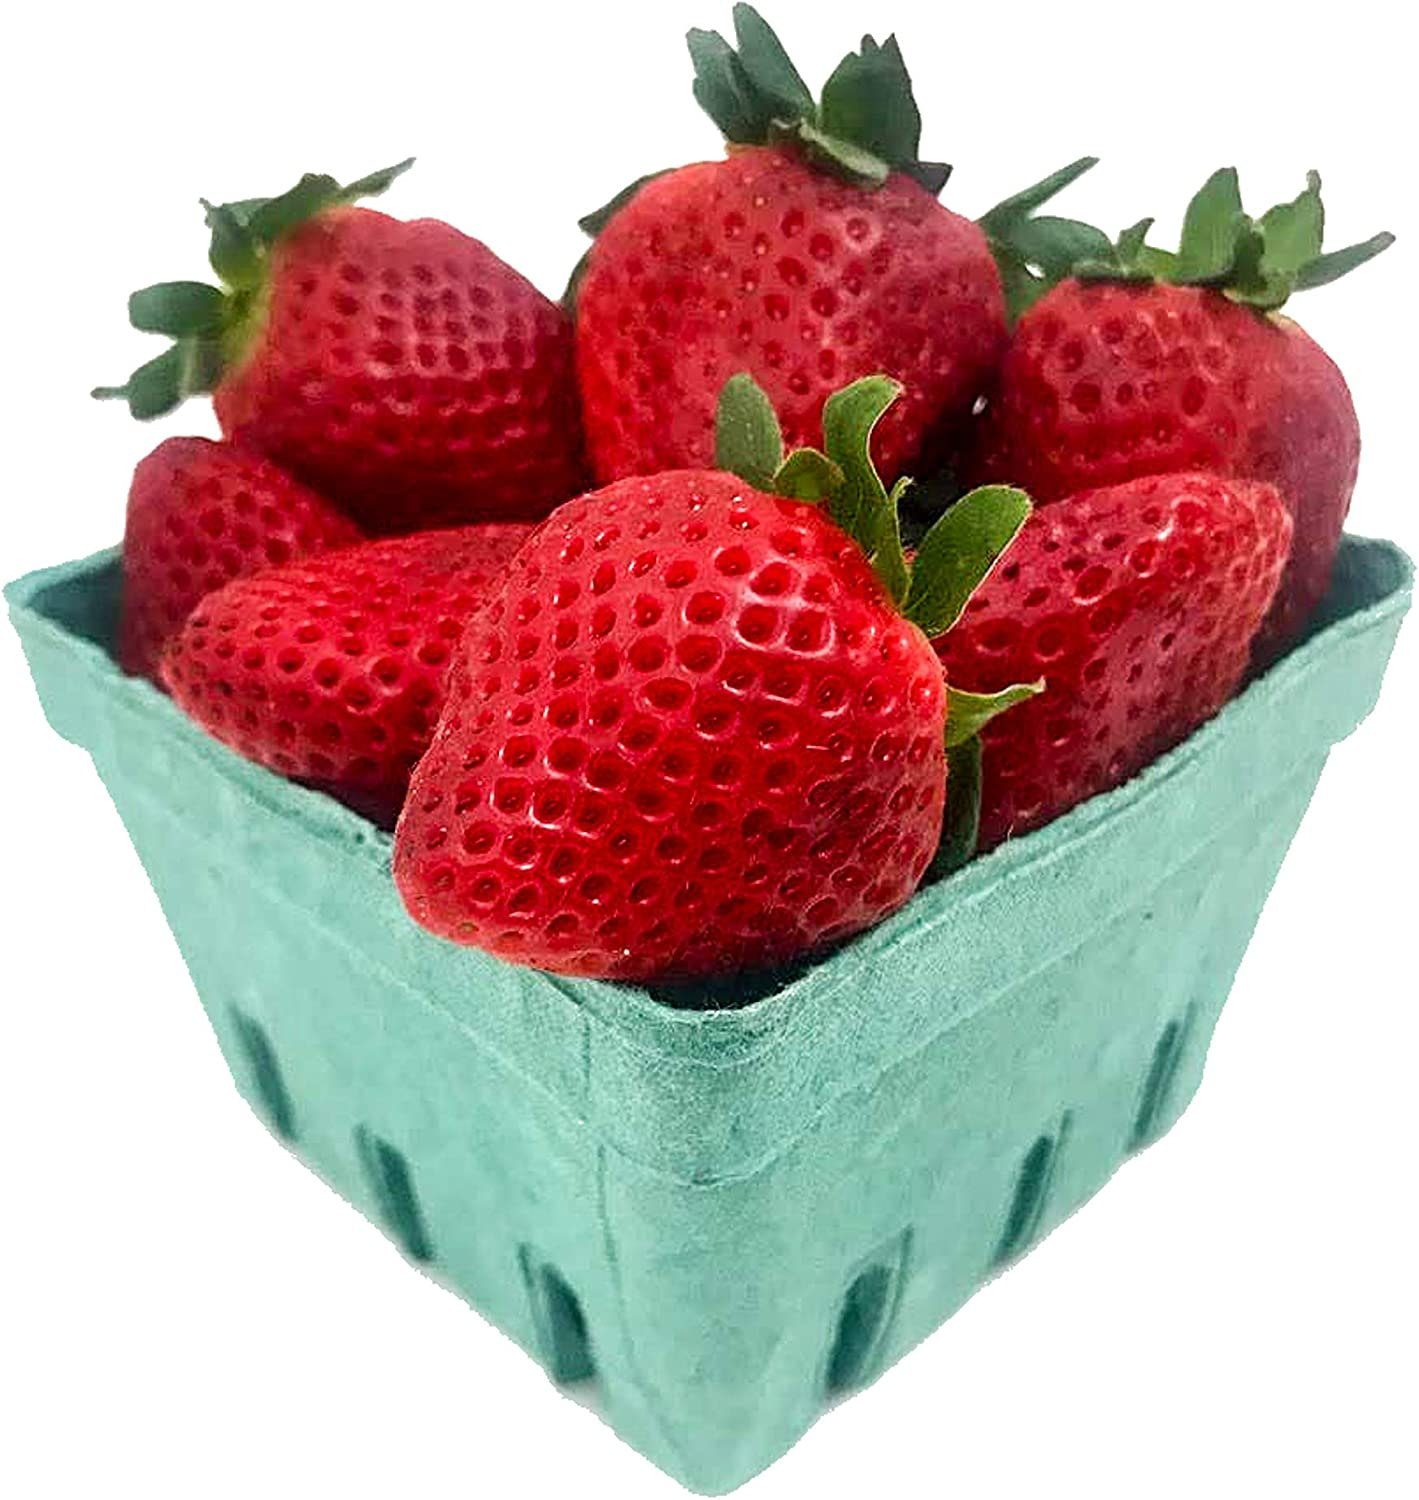 Pint Green Fiber Fruit/Berry Basket Container (25Pack) for Strawberry Blueberries Tomatoes and Produce